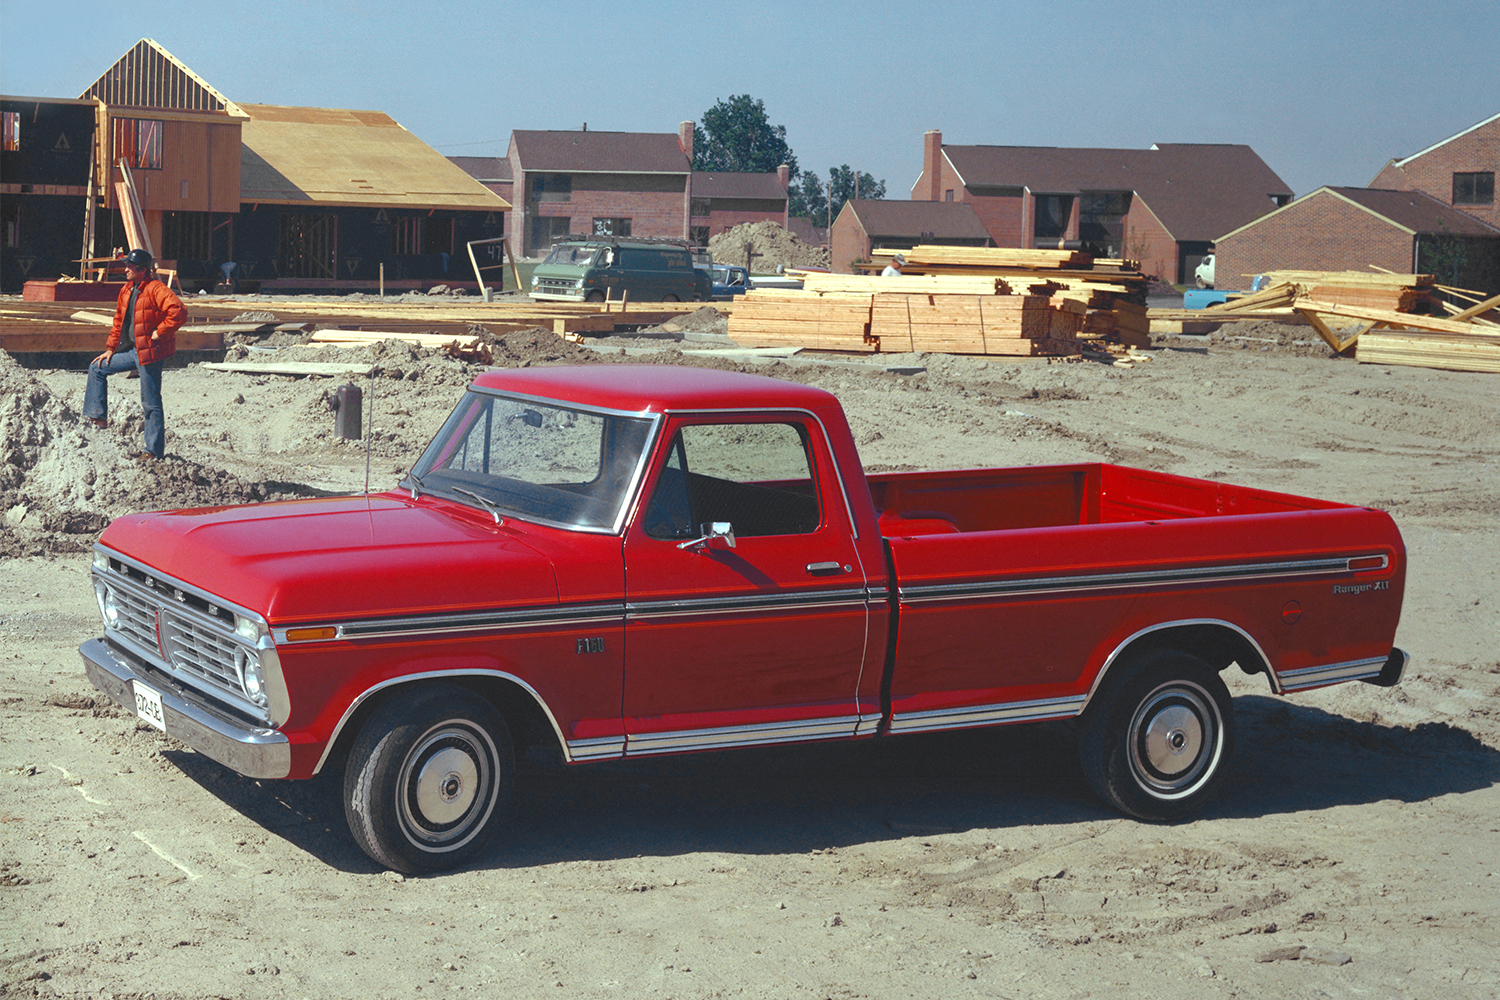 Old-school red Ford pickup truck on a worksite